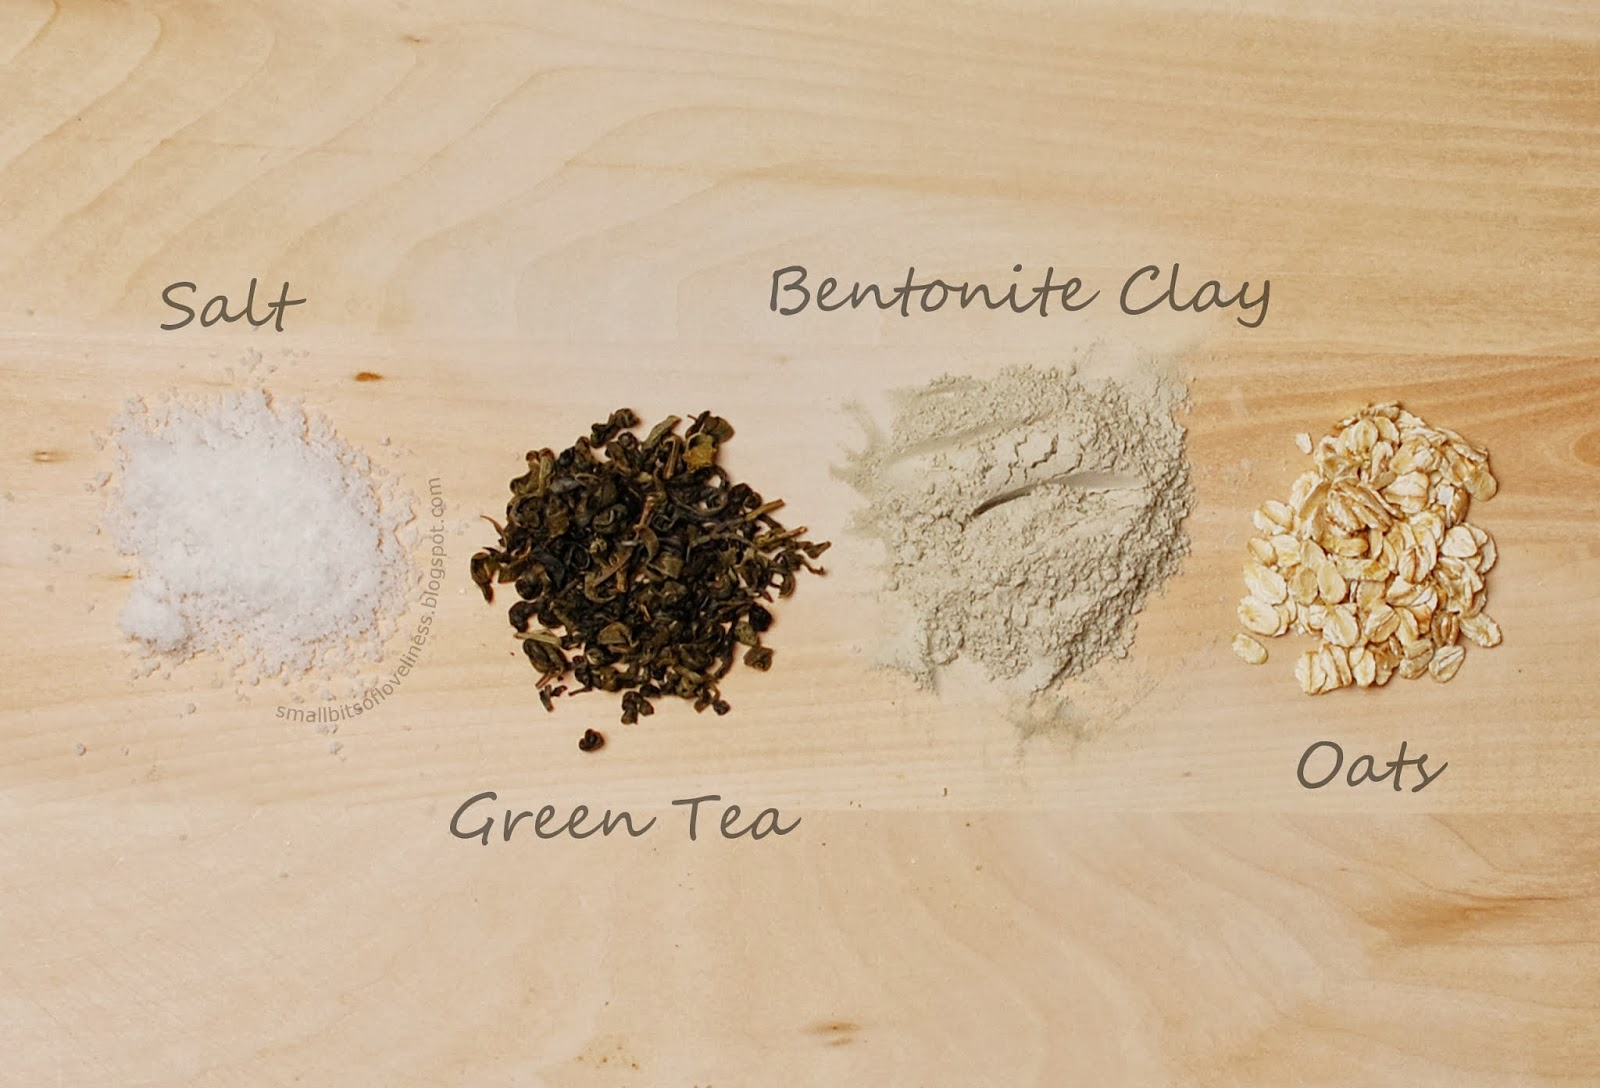 Detox Bath, Salt, Bentonite Clay, Green Tea, Oats